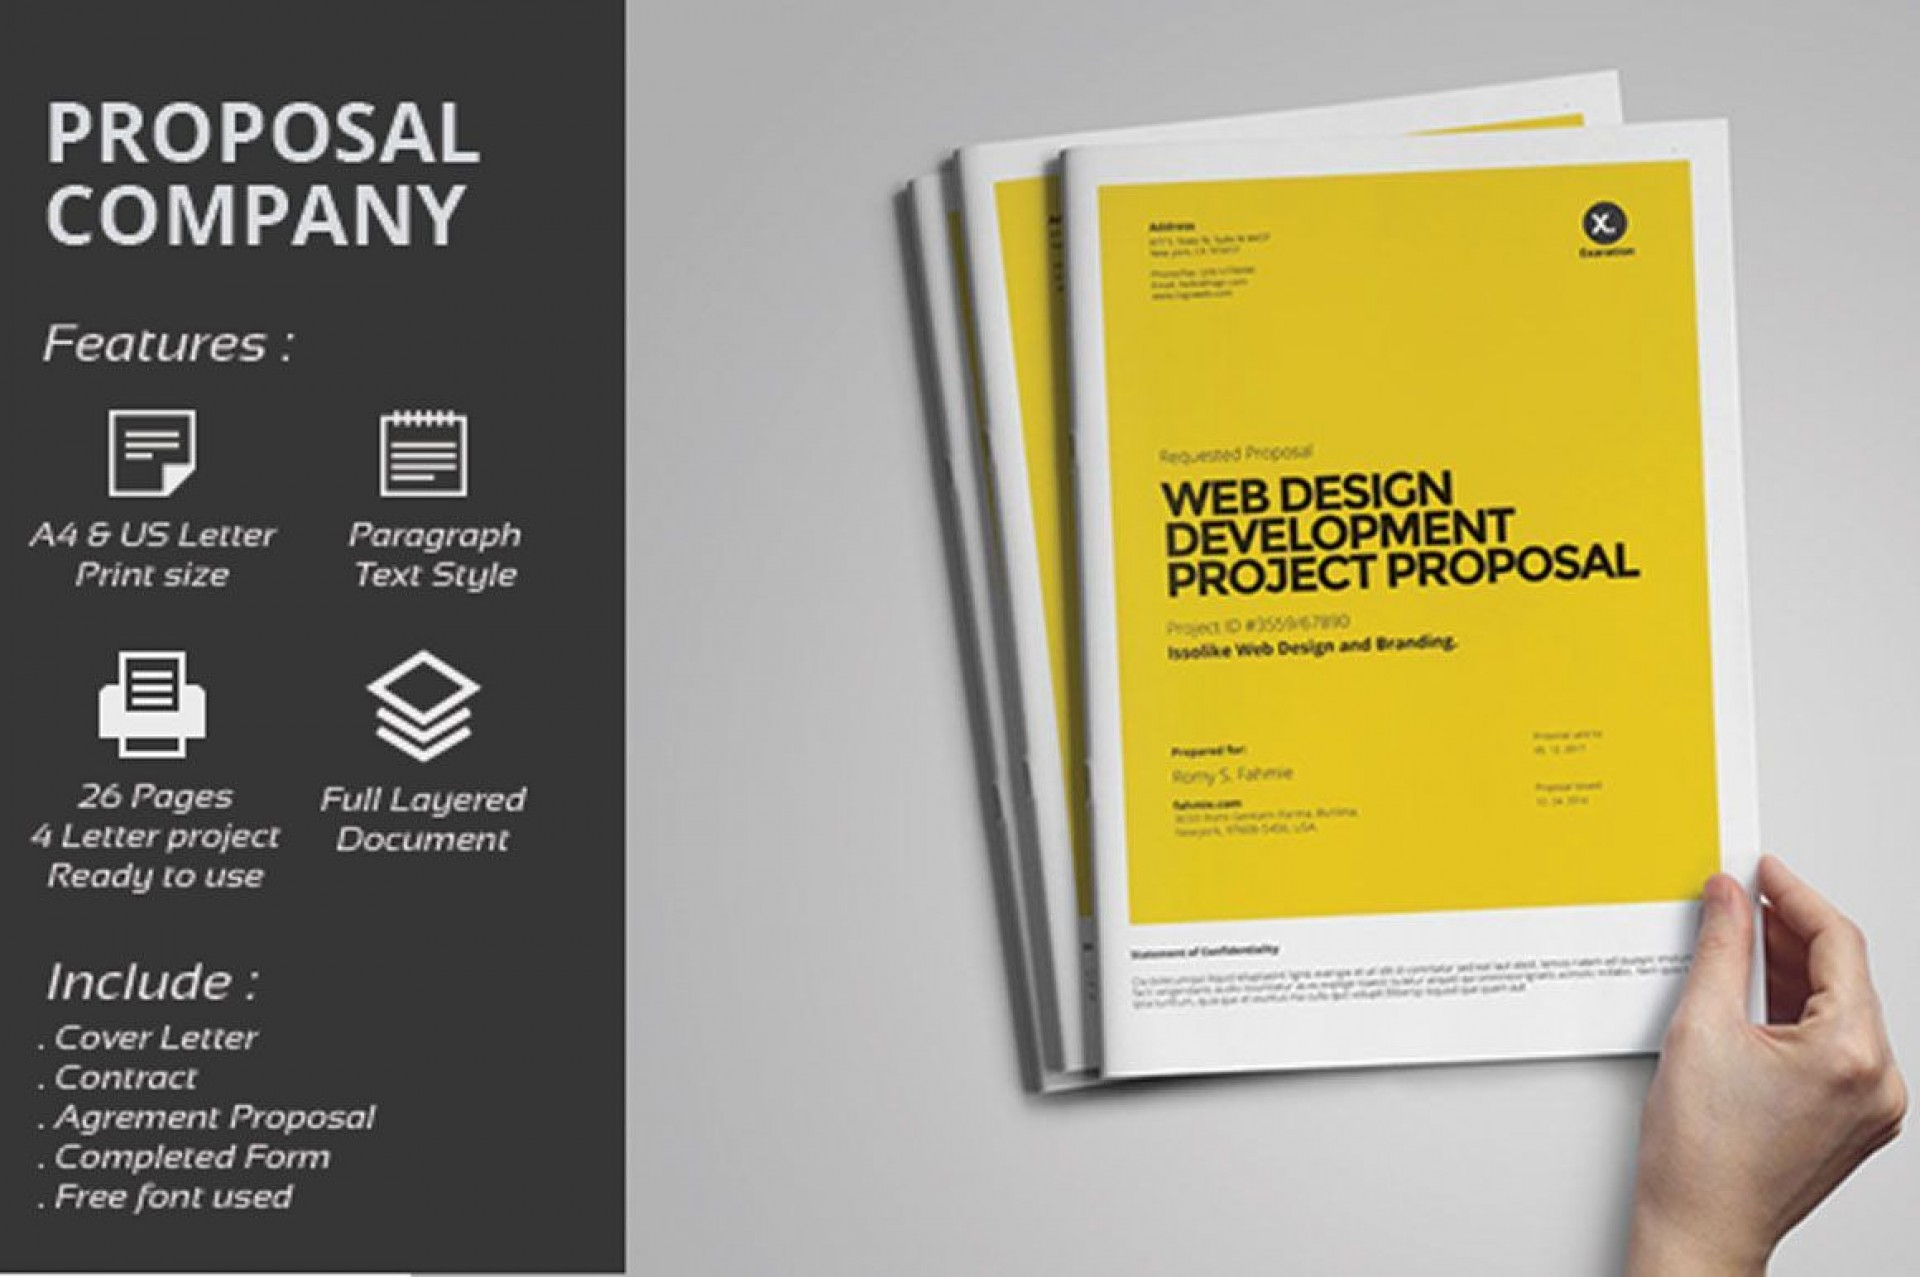 004 Exceptional Graphic Design Proposal Template Word High Resolution 1920